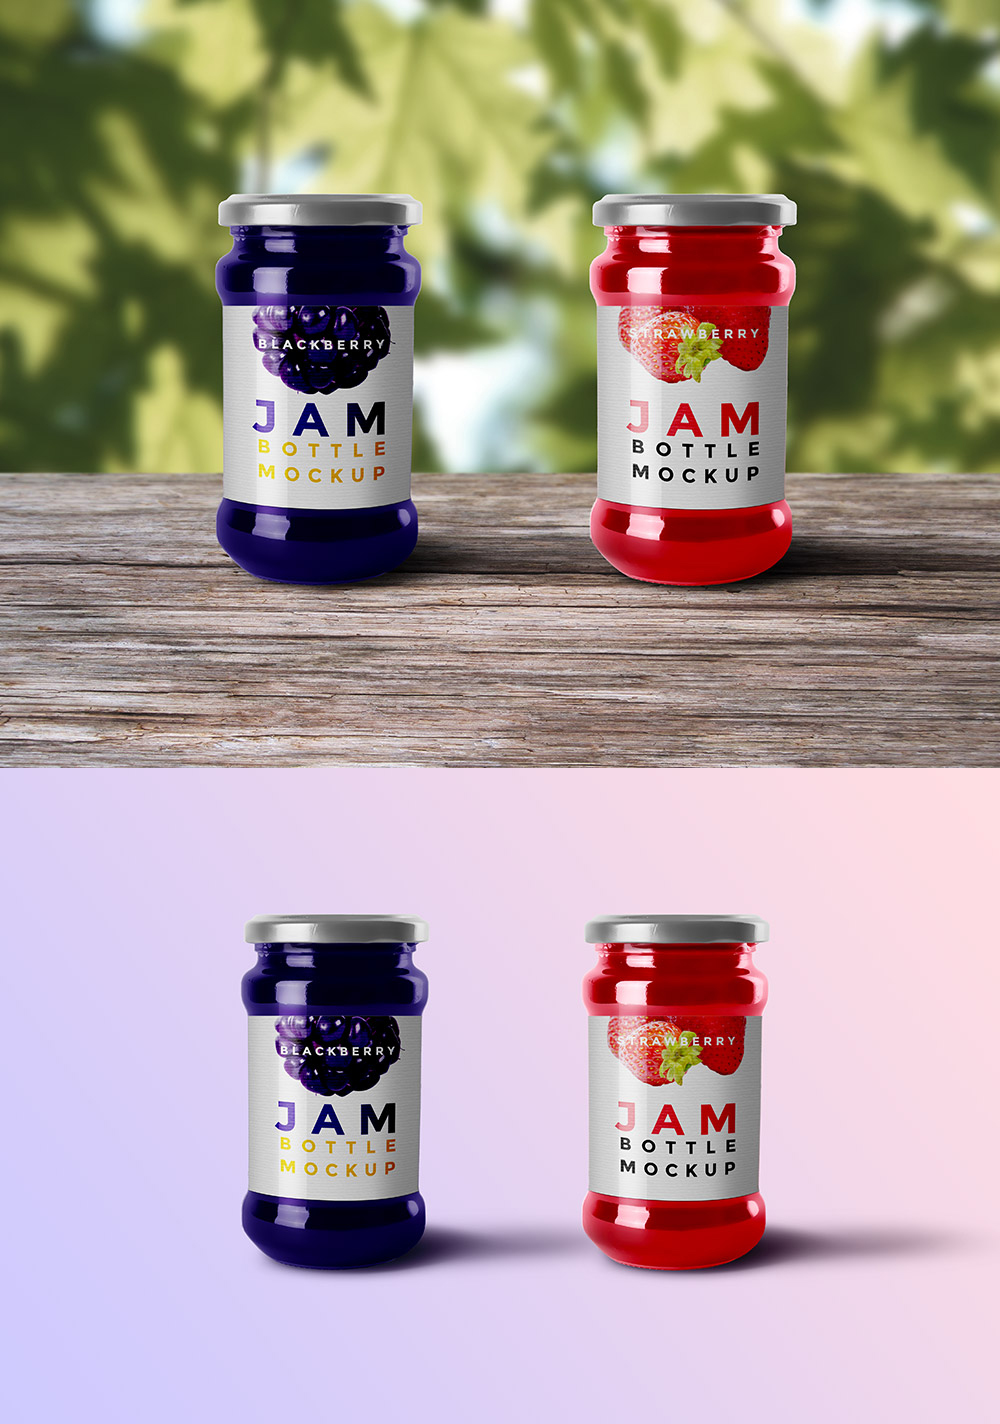 free-jam-bottle-mock-up-psd-for-graphic-artists